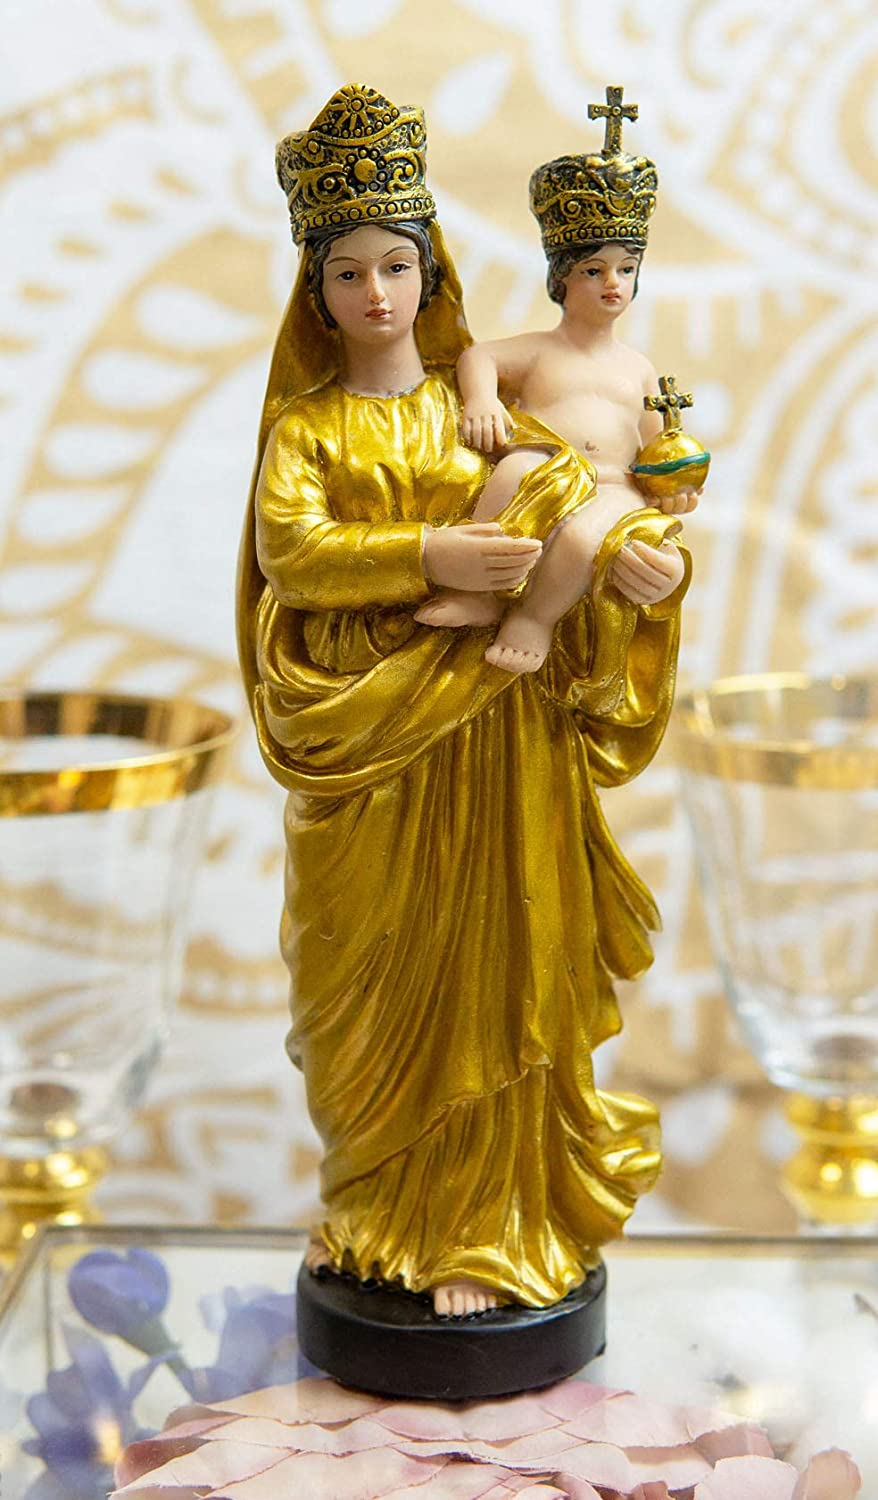 Ebros Gift Golden Robe Our Lady of Prompt Succor Blessed Virgin Mary with Baby Jesus Catholic Venerated Figurine 8.75